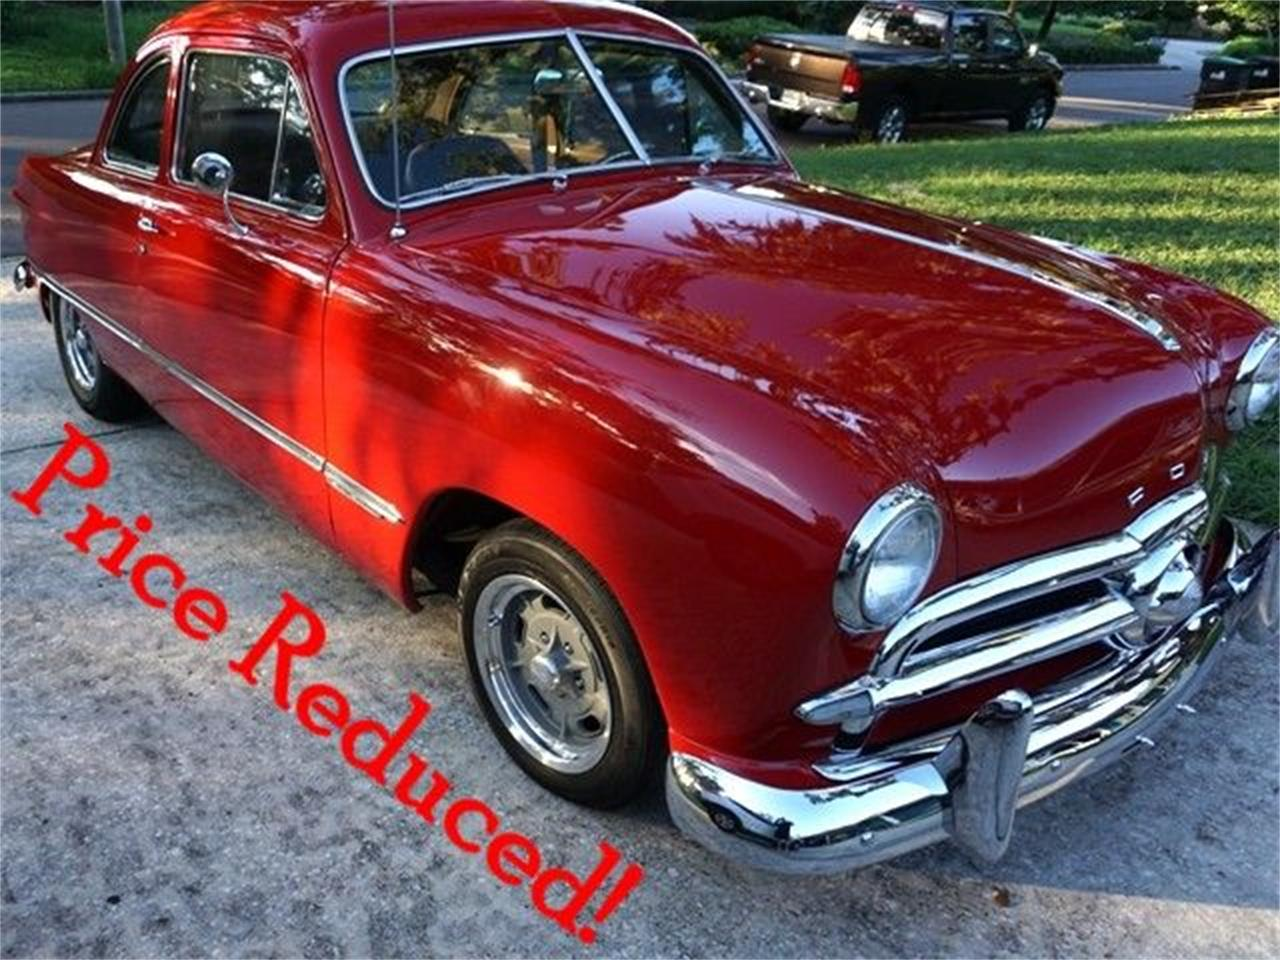 For Sale: 1949 Ford Coupe in Arlington, Texas